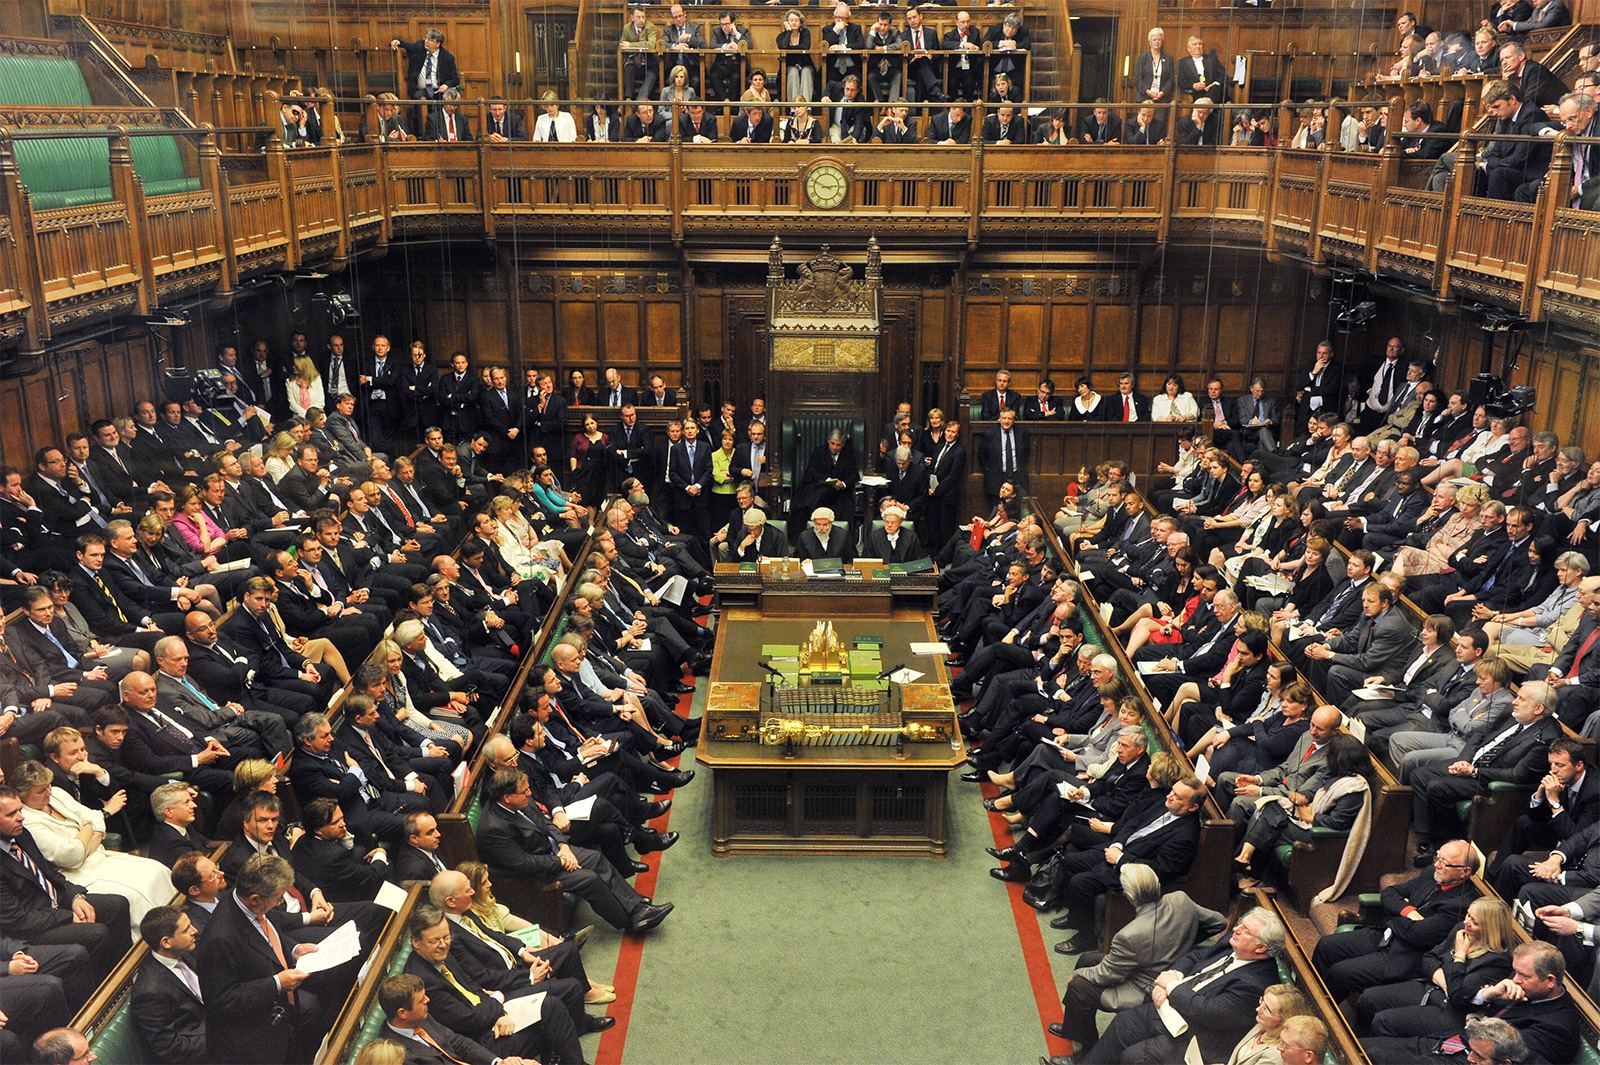 Azerbaijani embassy to Canada condemns speeches in House of Commons as they support war crimes